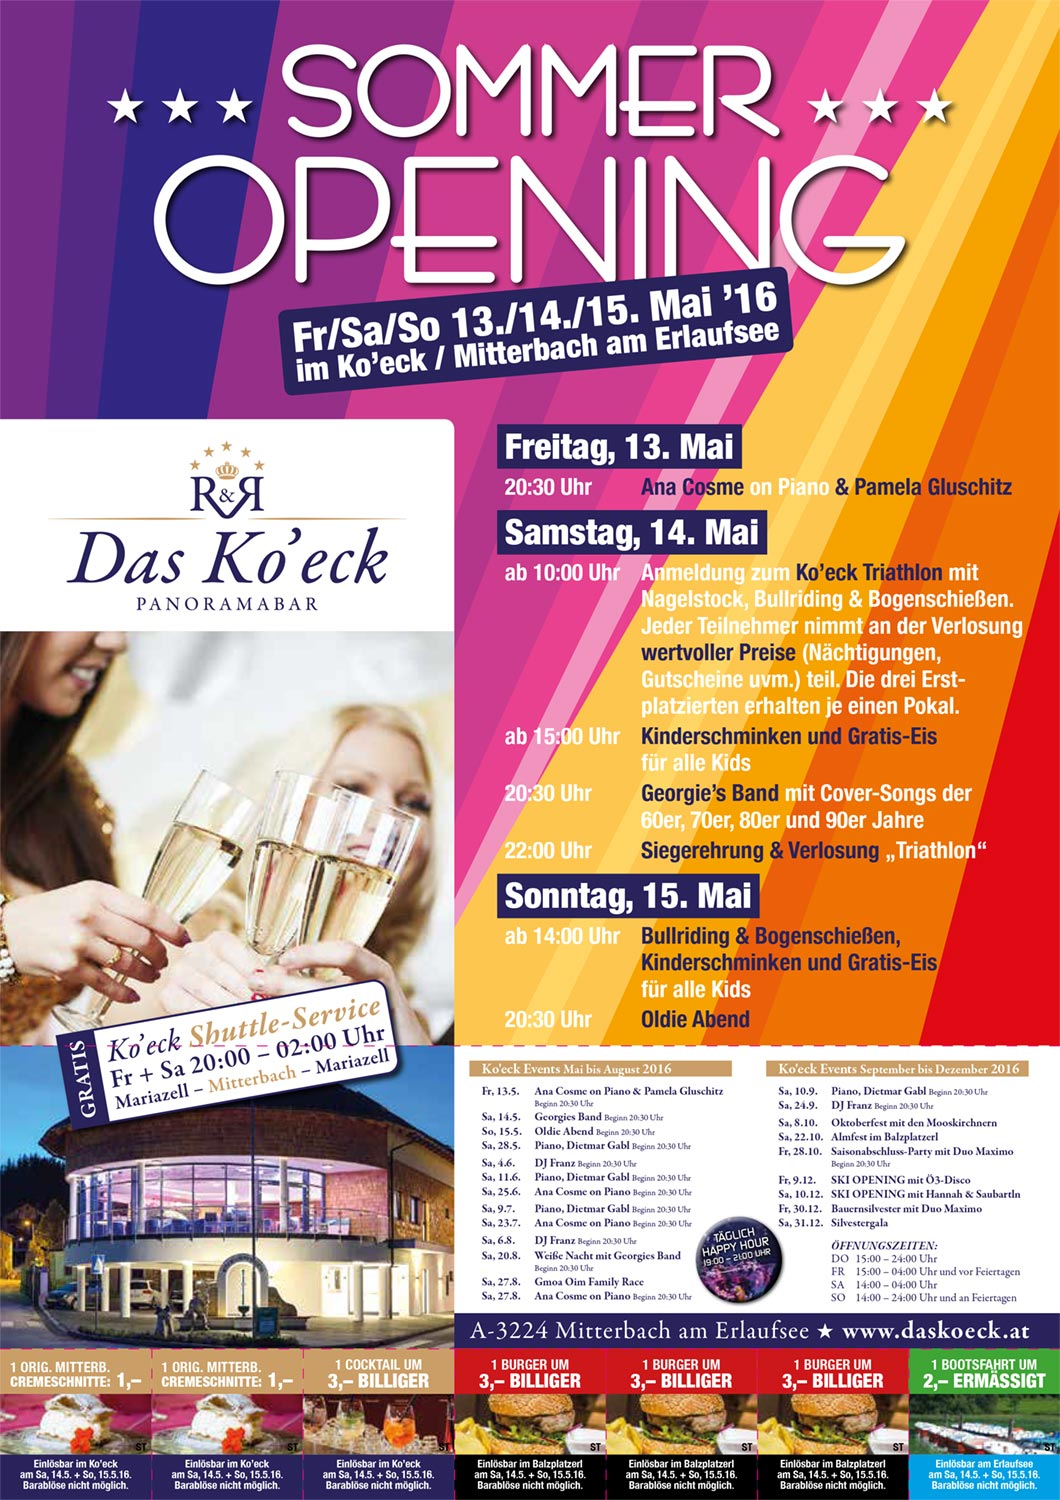 Sommeropening_KOECK-Mitterbach